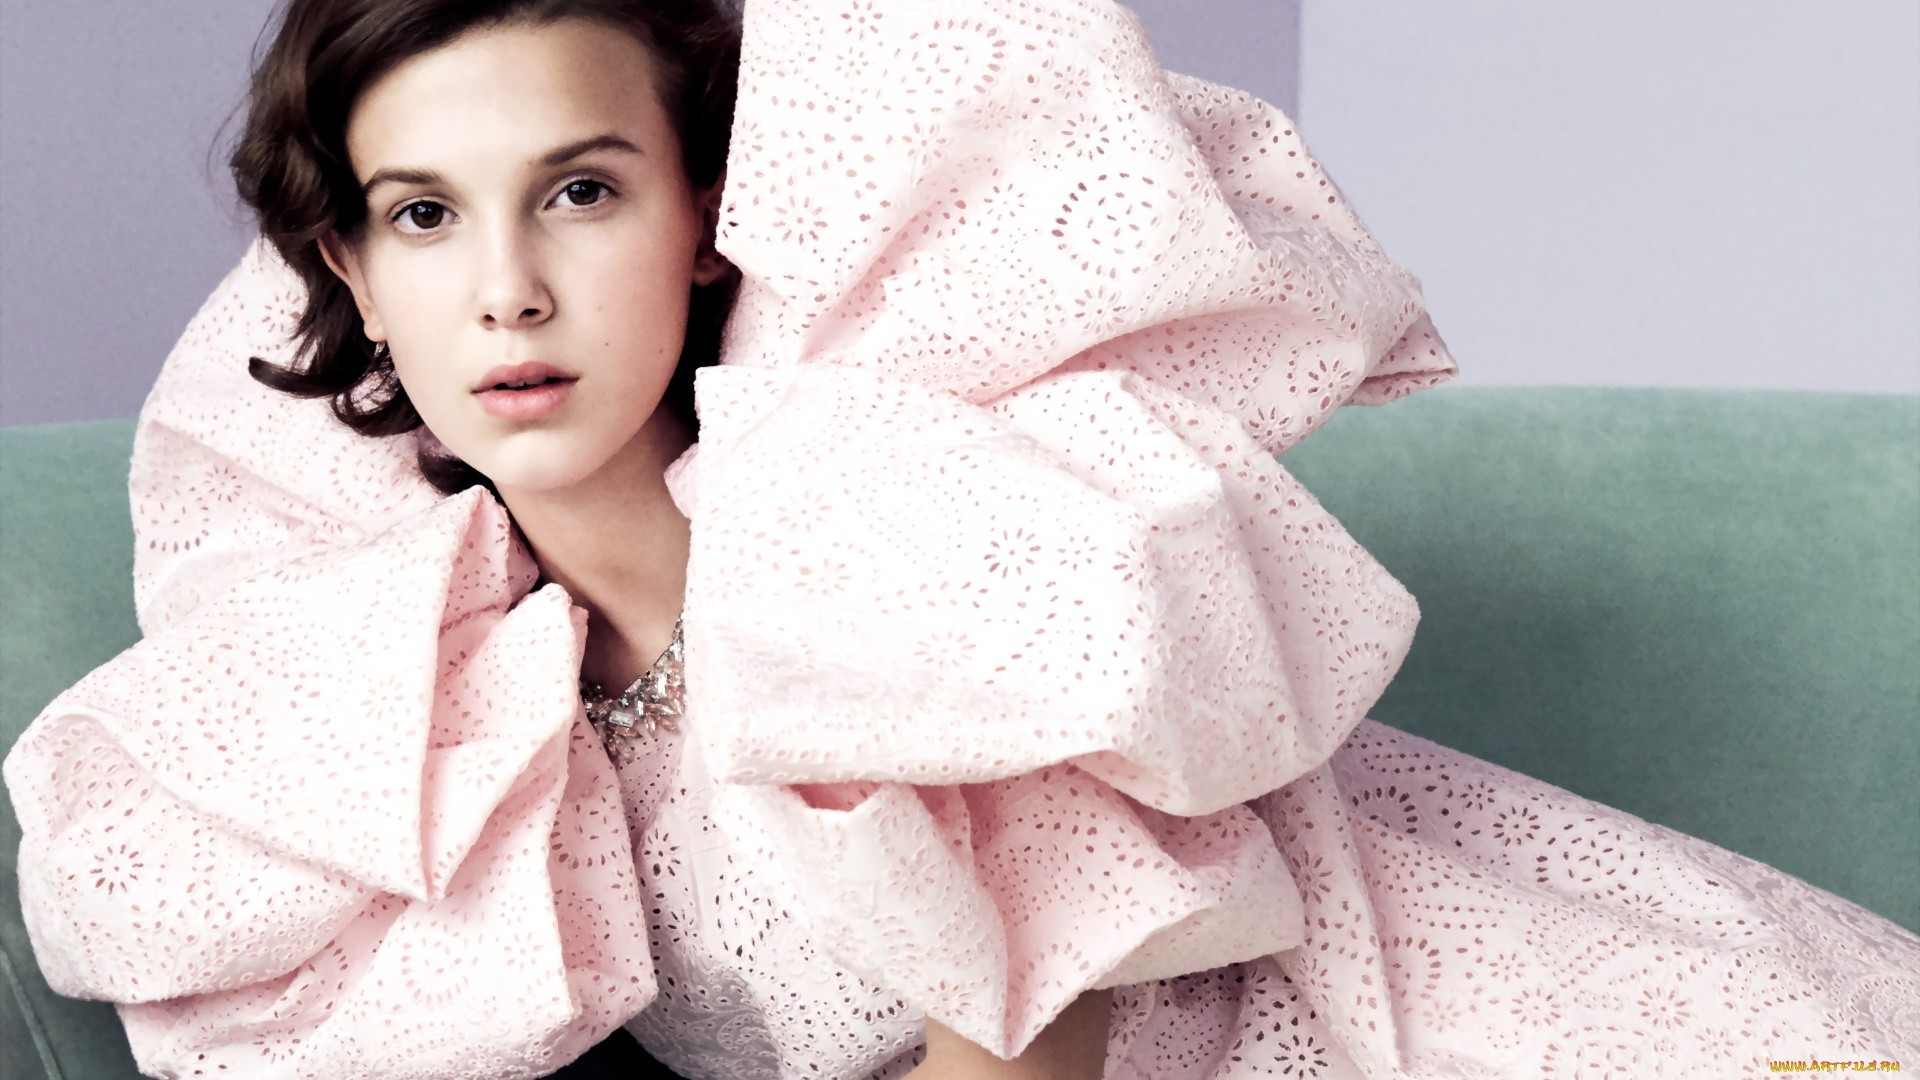 Millie Bobby Brown a wallpaper